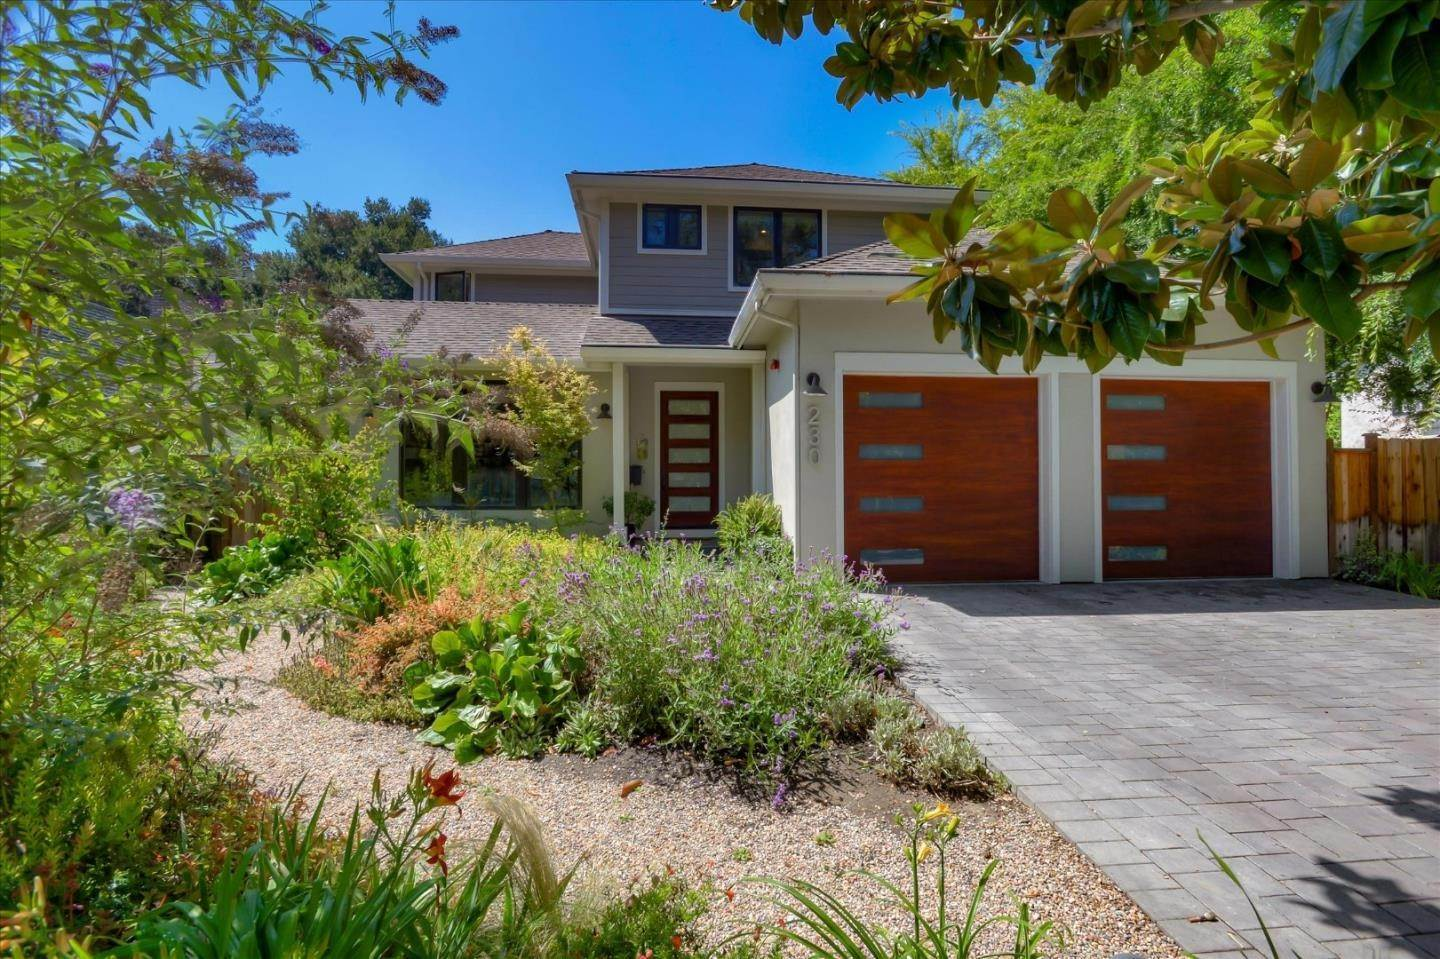 Single Family Homes for Sale at 230 Oconnor Street Menlo Park, California 94025 United States